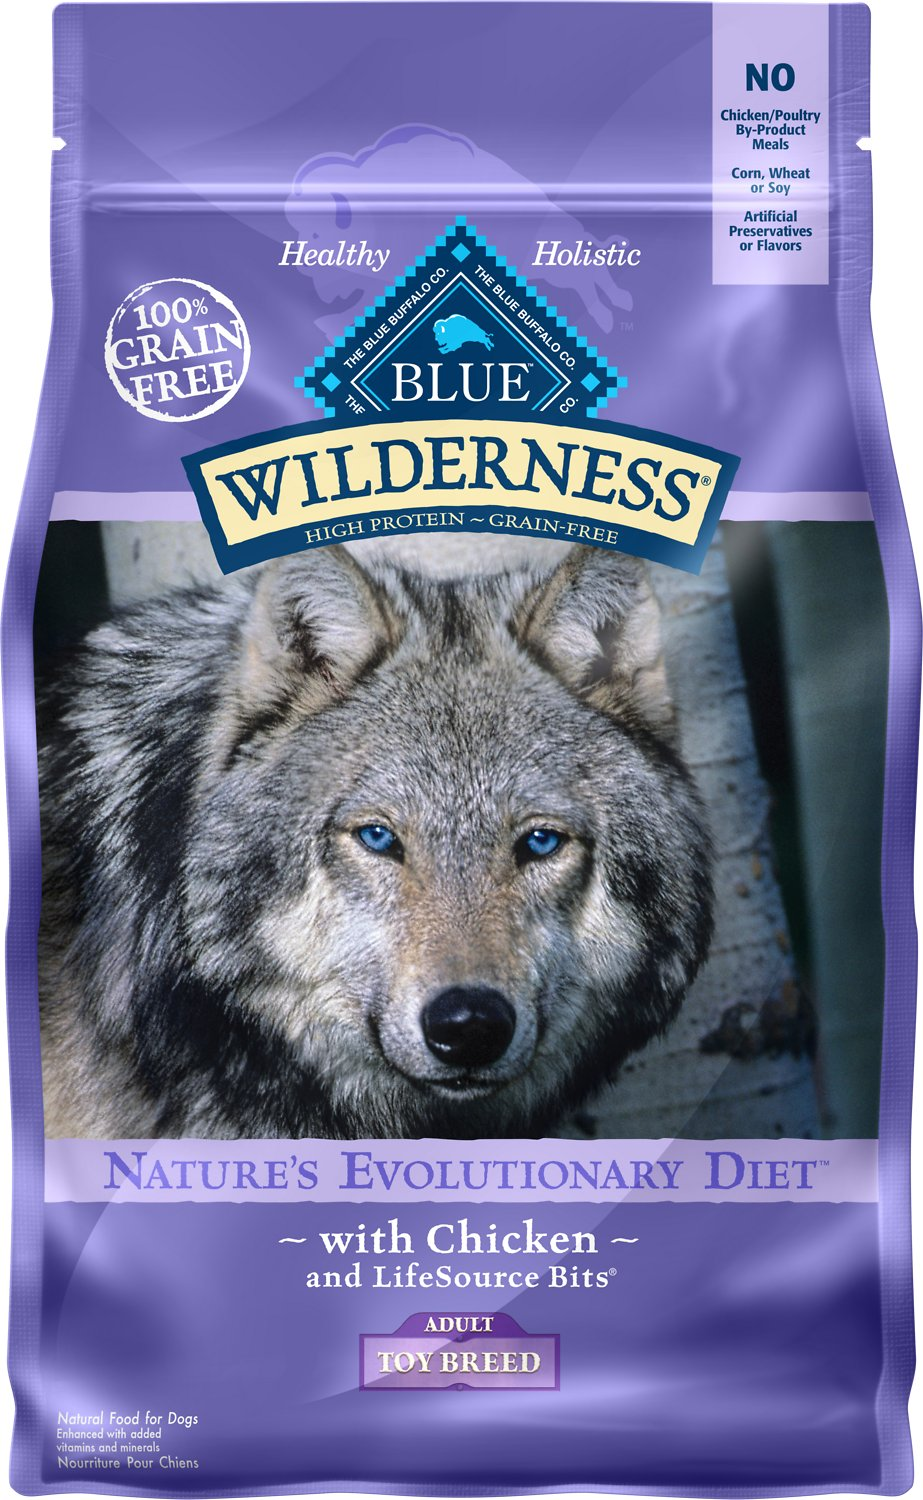 Blue Buffalo Wilderness Toy Breed Adult Chicken Recipe Grain-Free Dry Dog Food, 4-lb bag (Weights: 4.0 pounds) Image